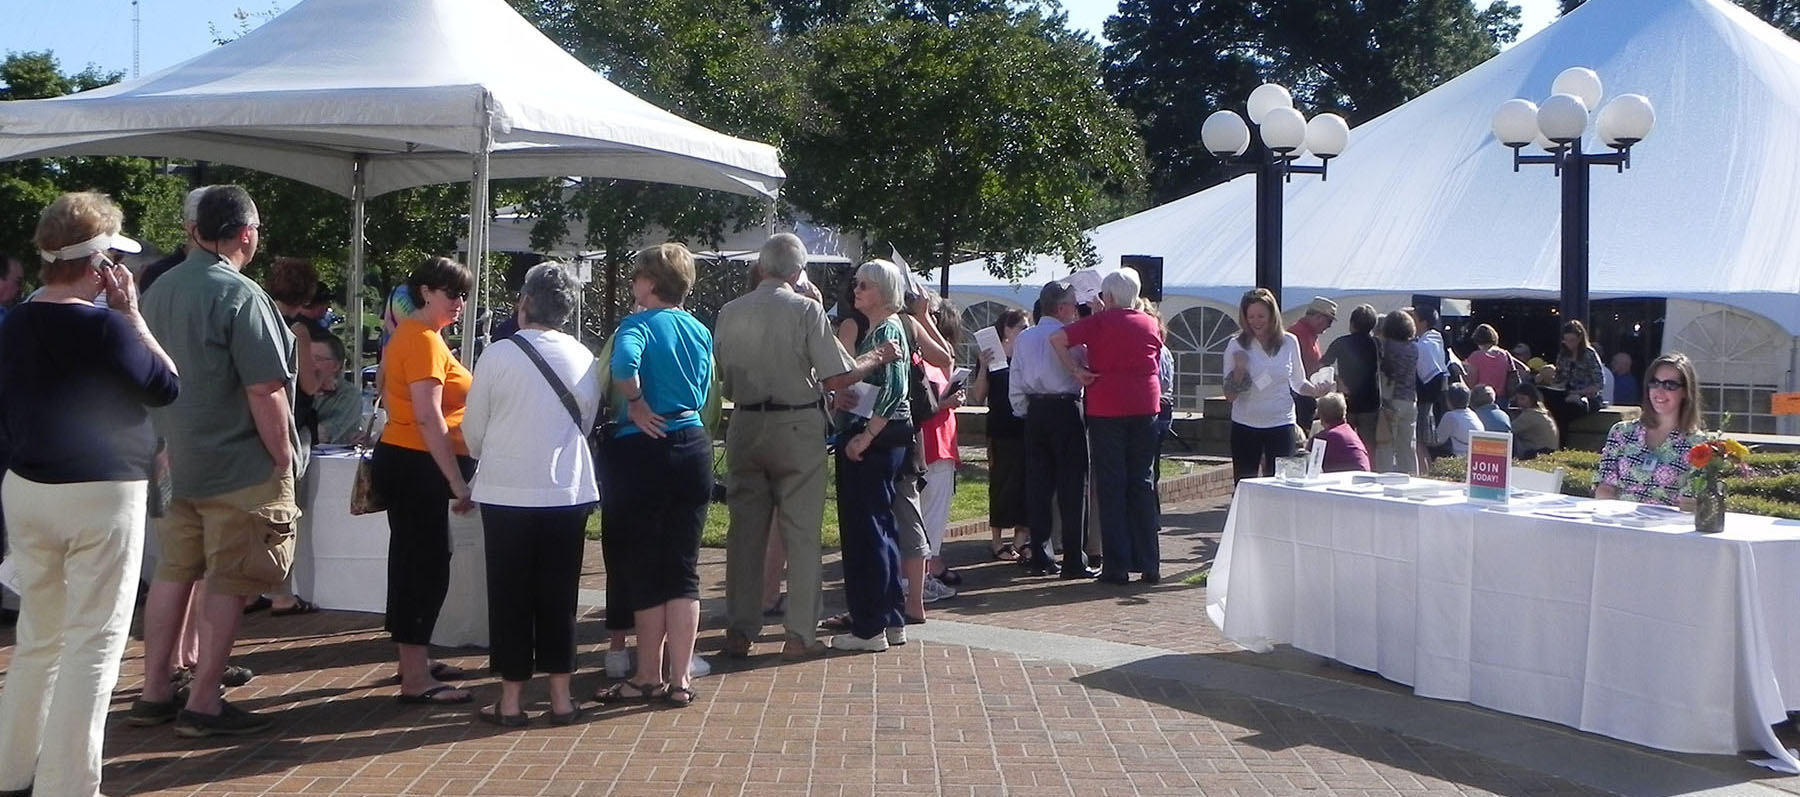 A crowd at the Potters Market Invitational. There are large tents set up on Mint Museum Randolph's lawn to host the event